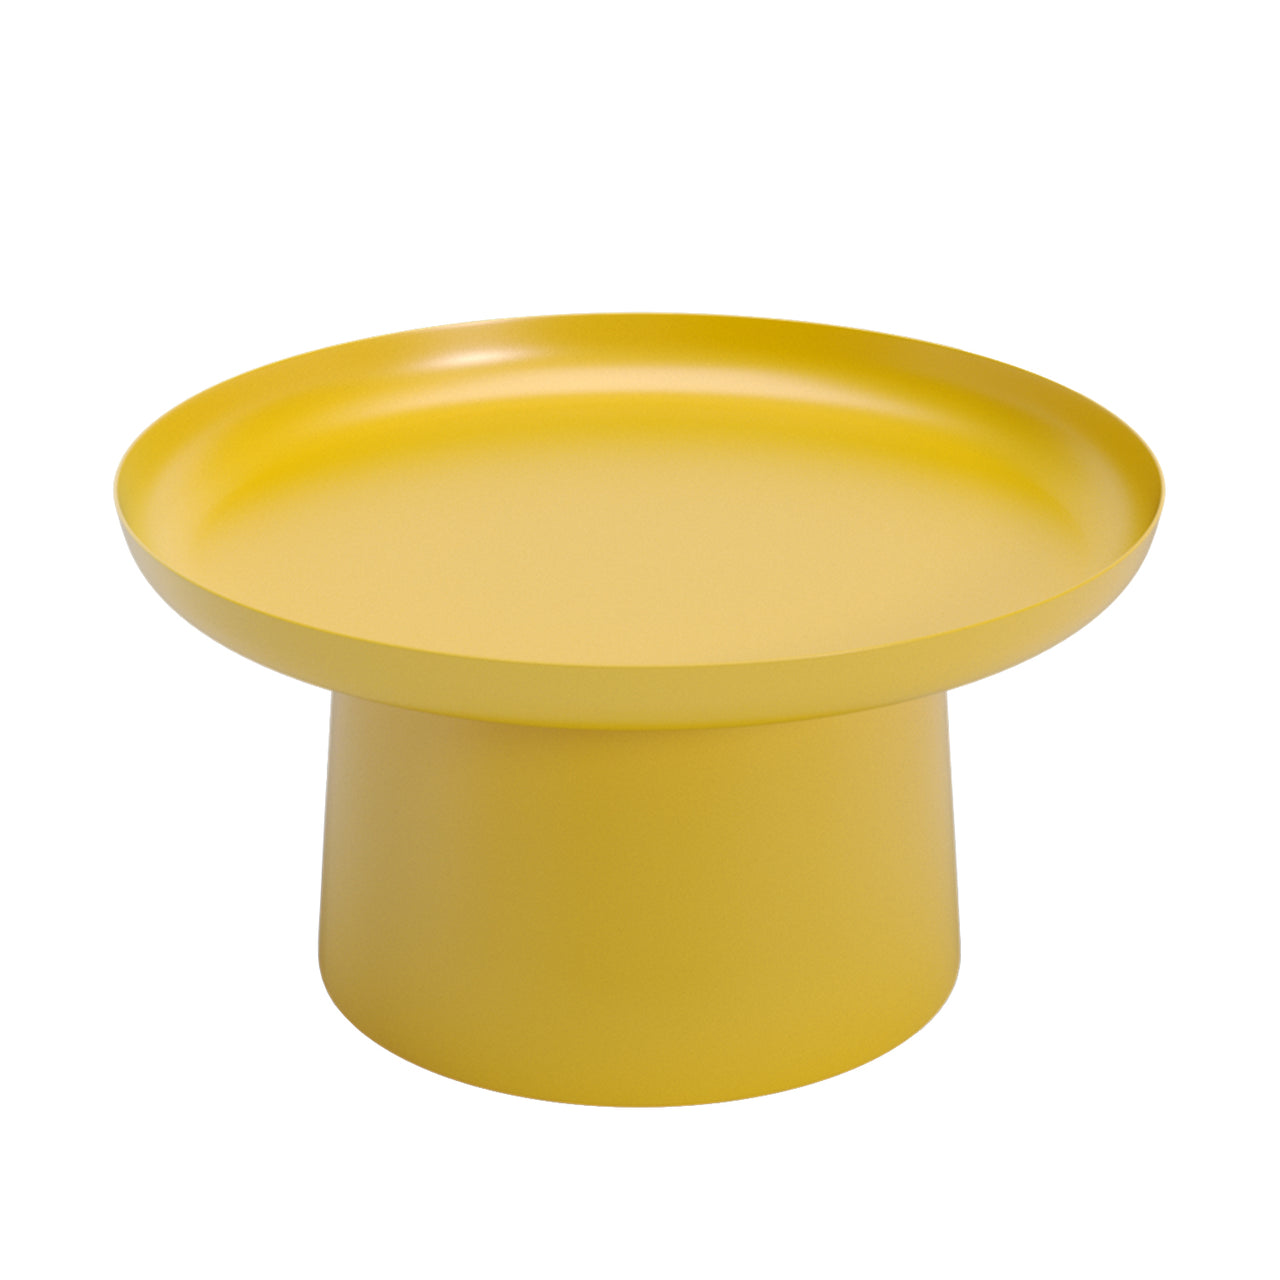 Musette Coffee + Side Table: Coffee Table + Golden Yellow